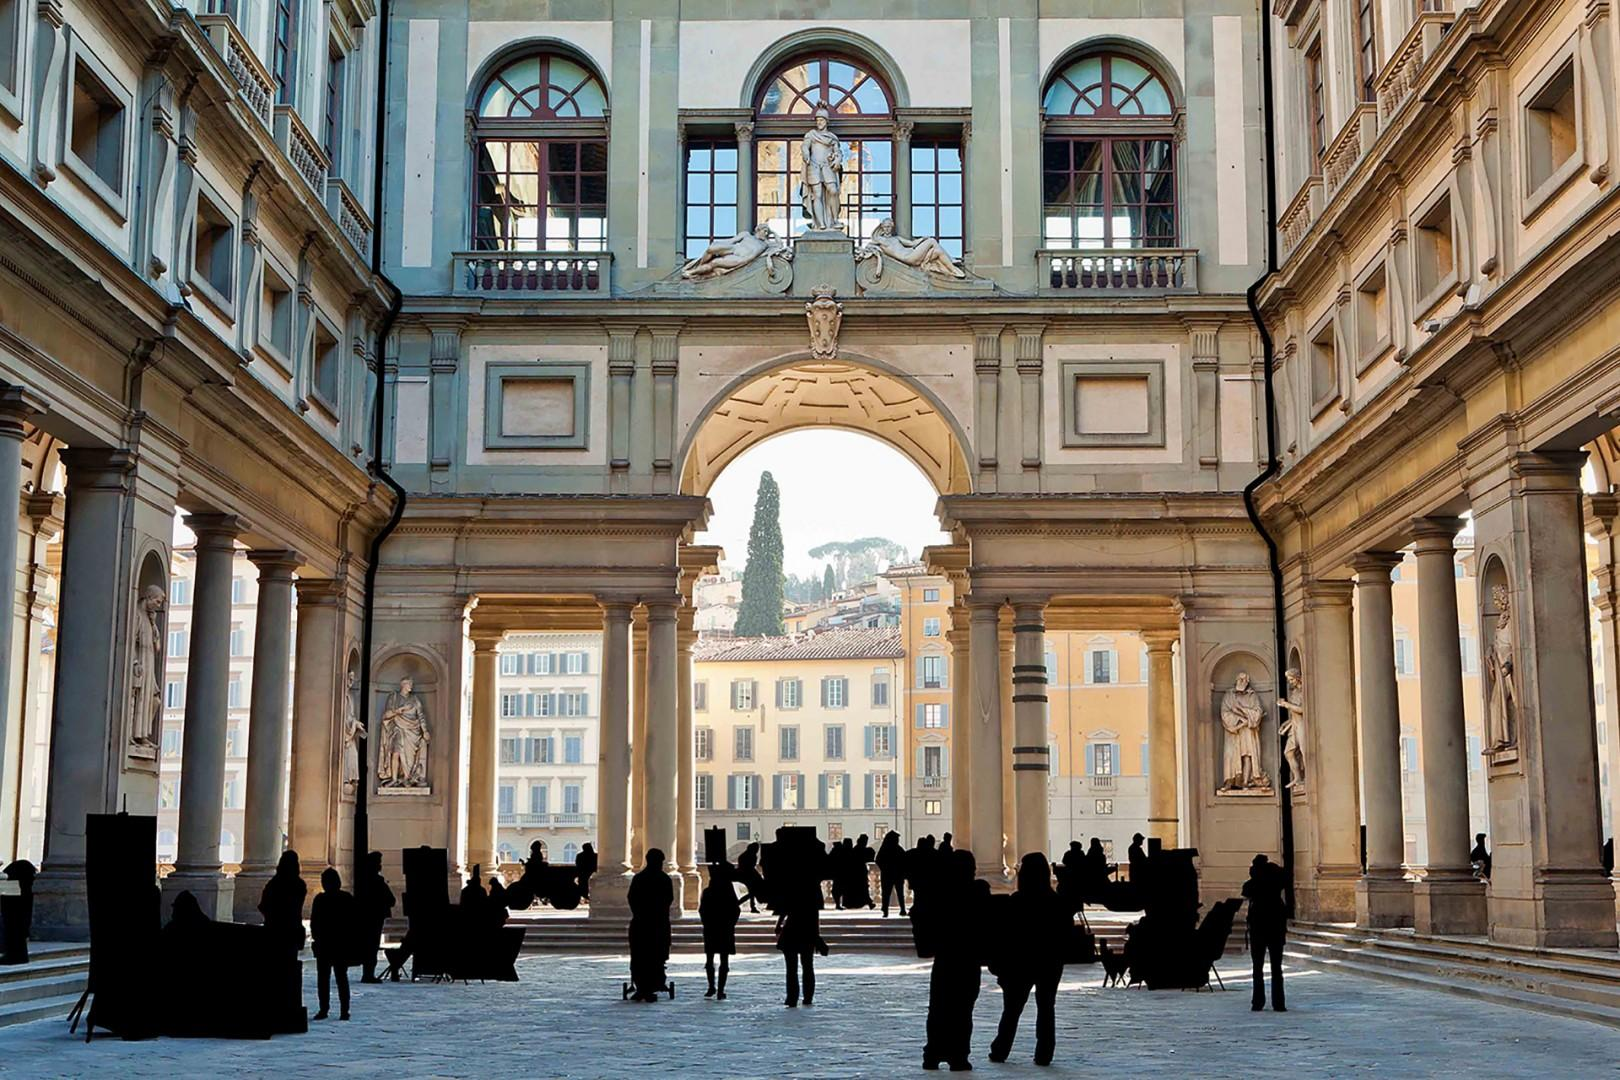 The Uffizi Gallery holds one of the finest and oldest collections of art since the time of Leonardo da Vinci.